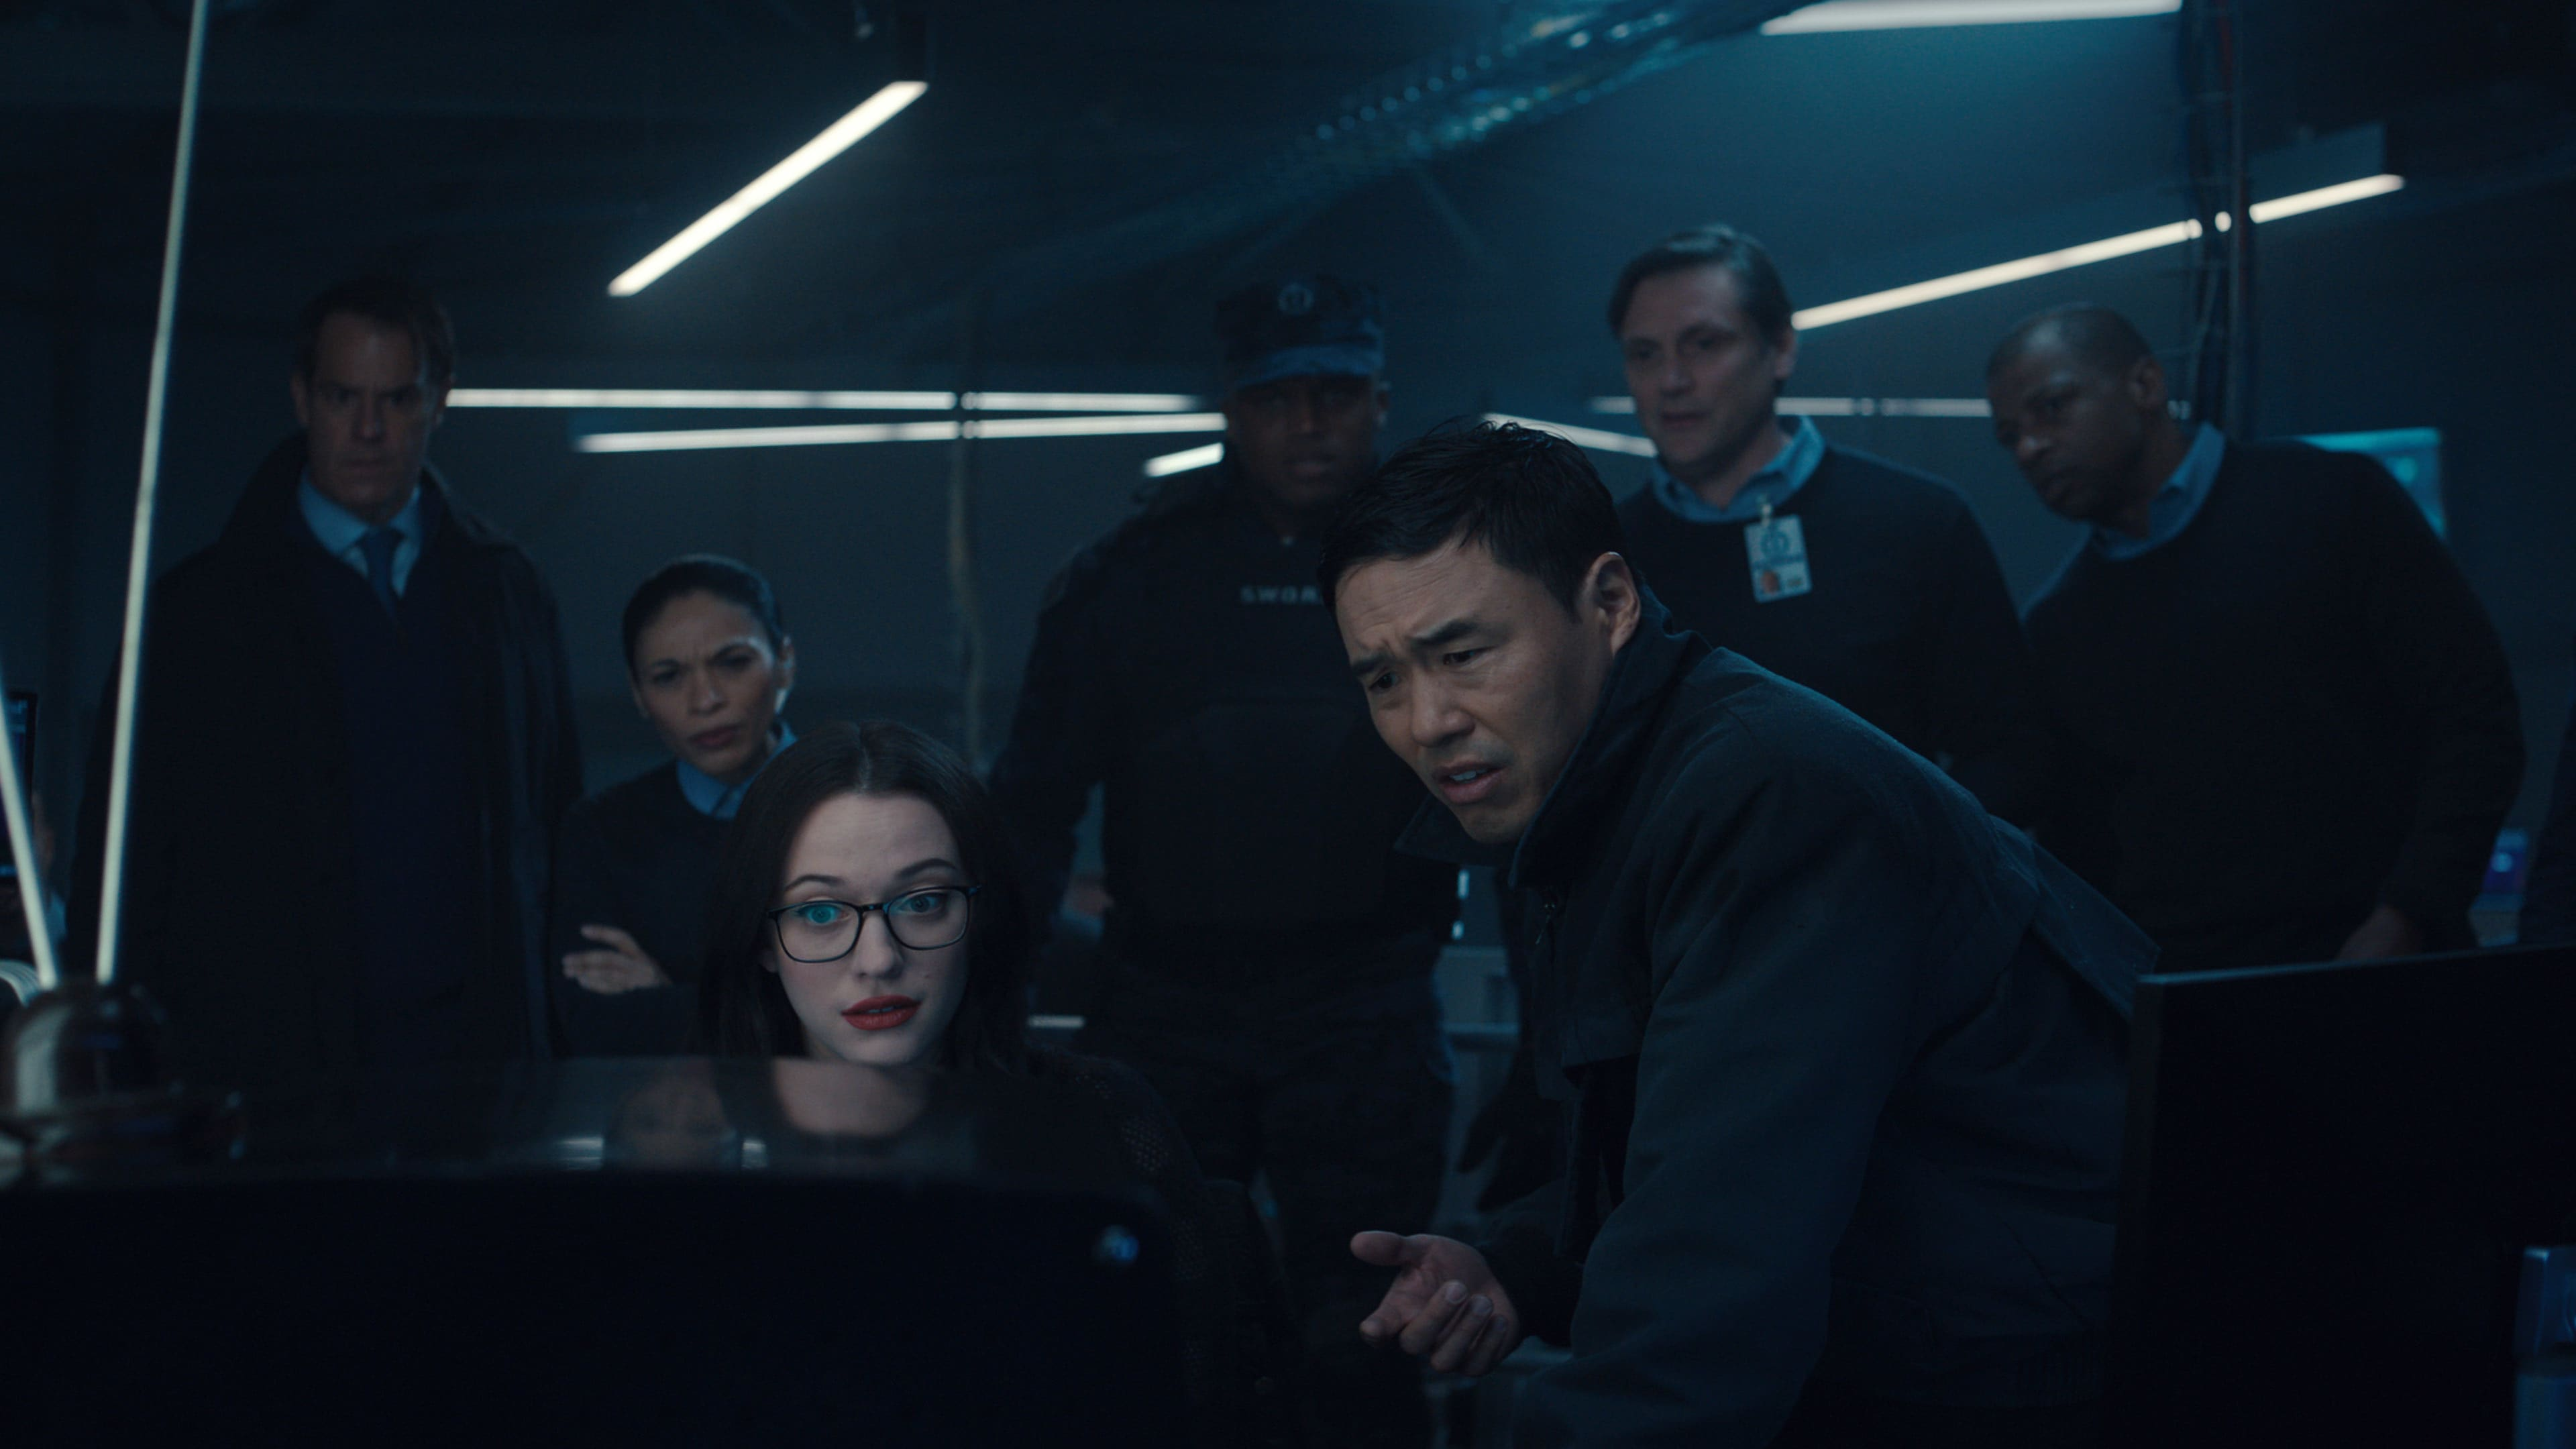 (L-R): Kat Dennings as Darcy Lewis and Randall Park as Jimmy Woo in Marvel Studios' WANDAVISION exclusively on Disney+. Photo courtesy of Marvel Studios. ©Marvel Studios 2021. All Rights Reserved.